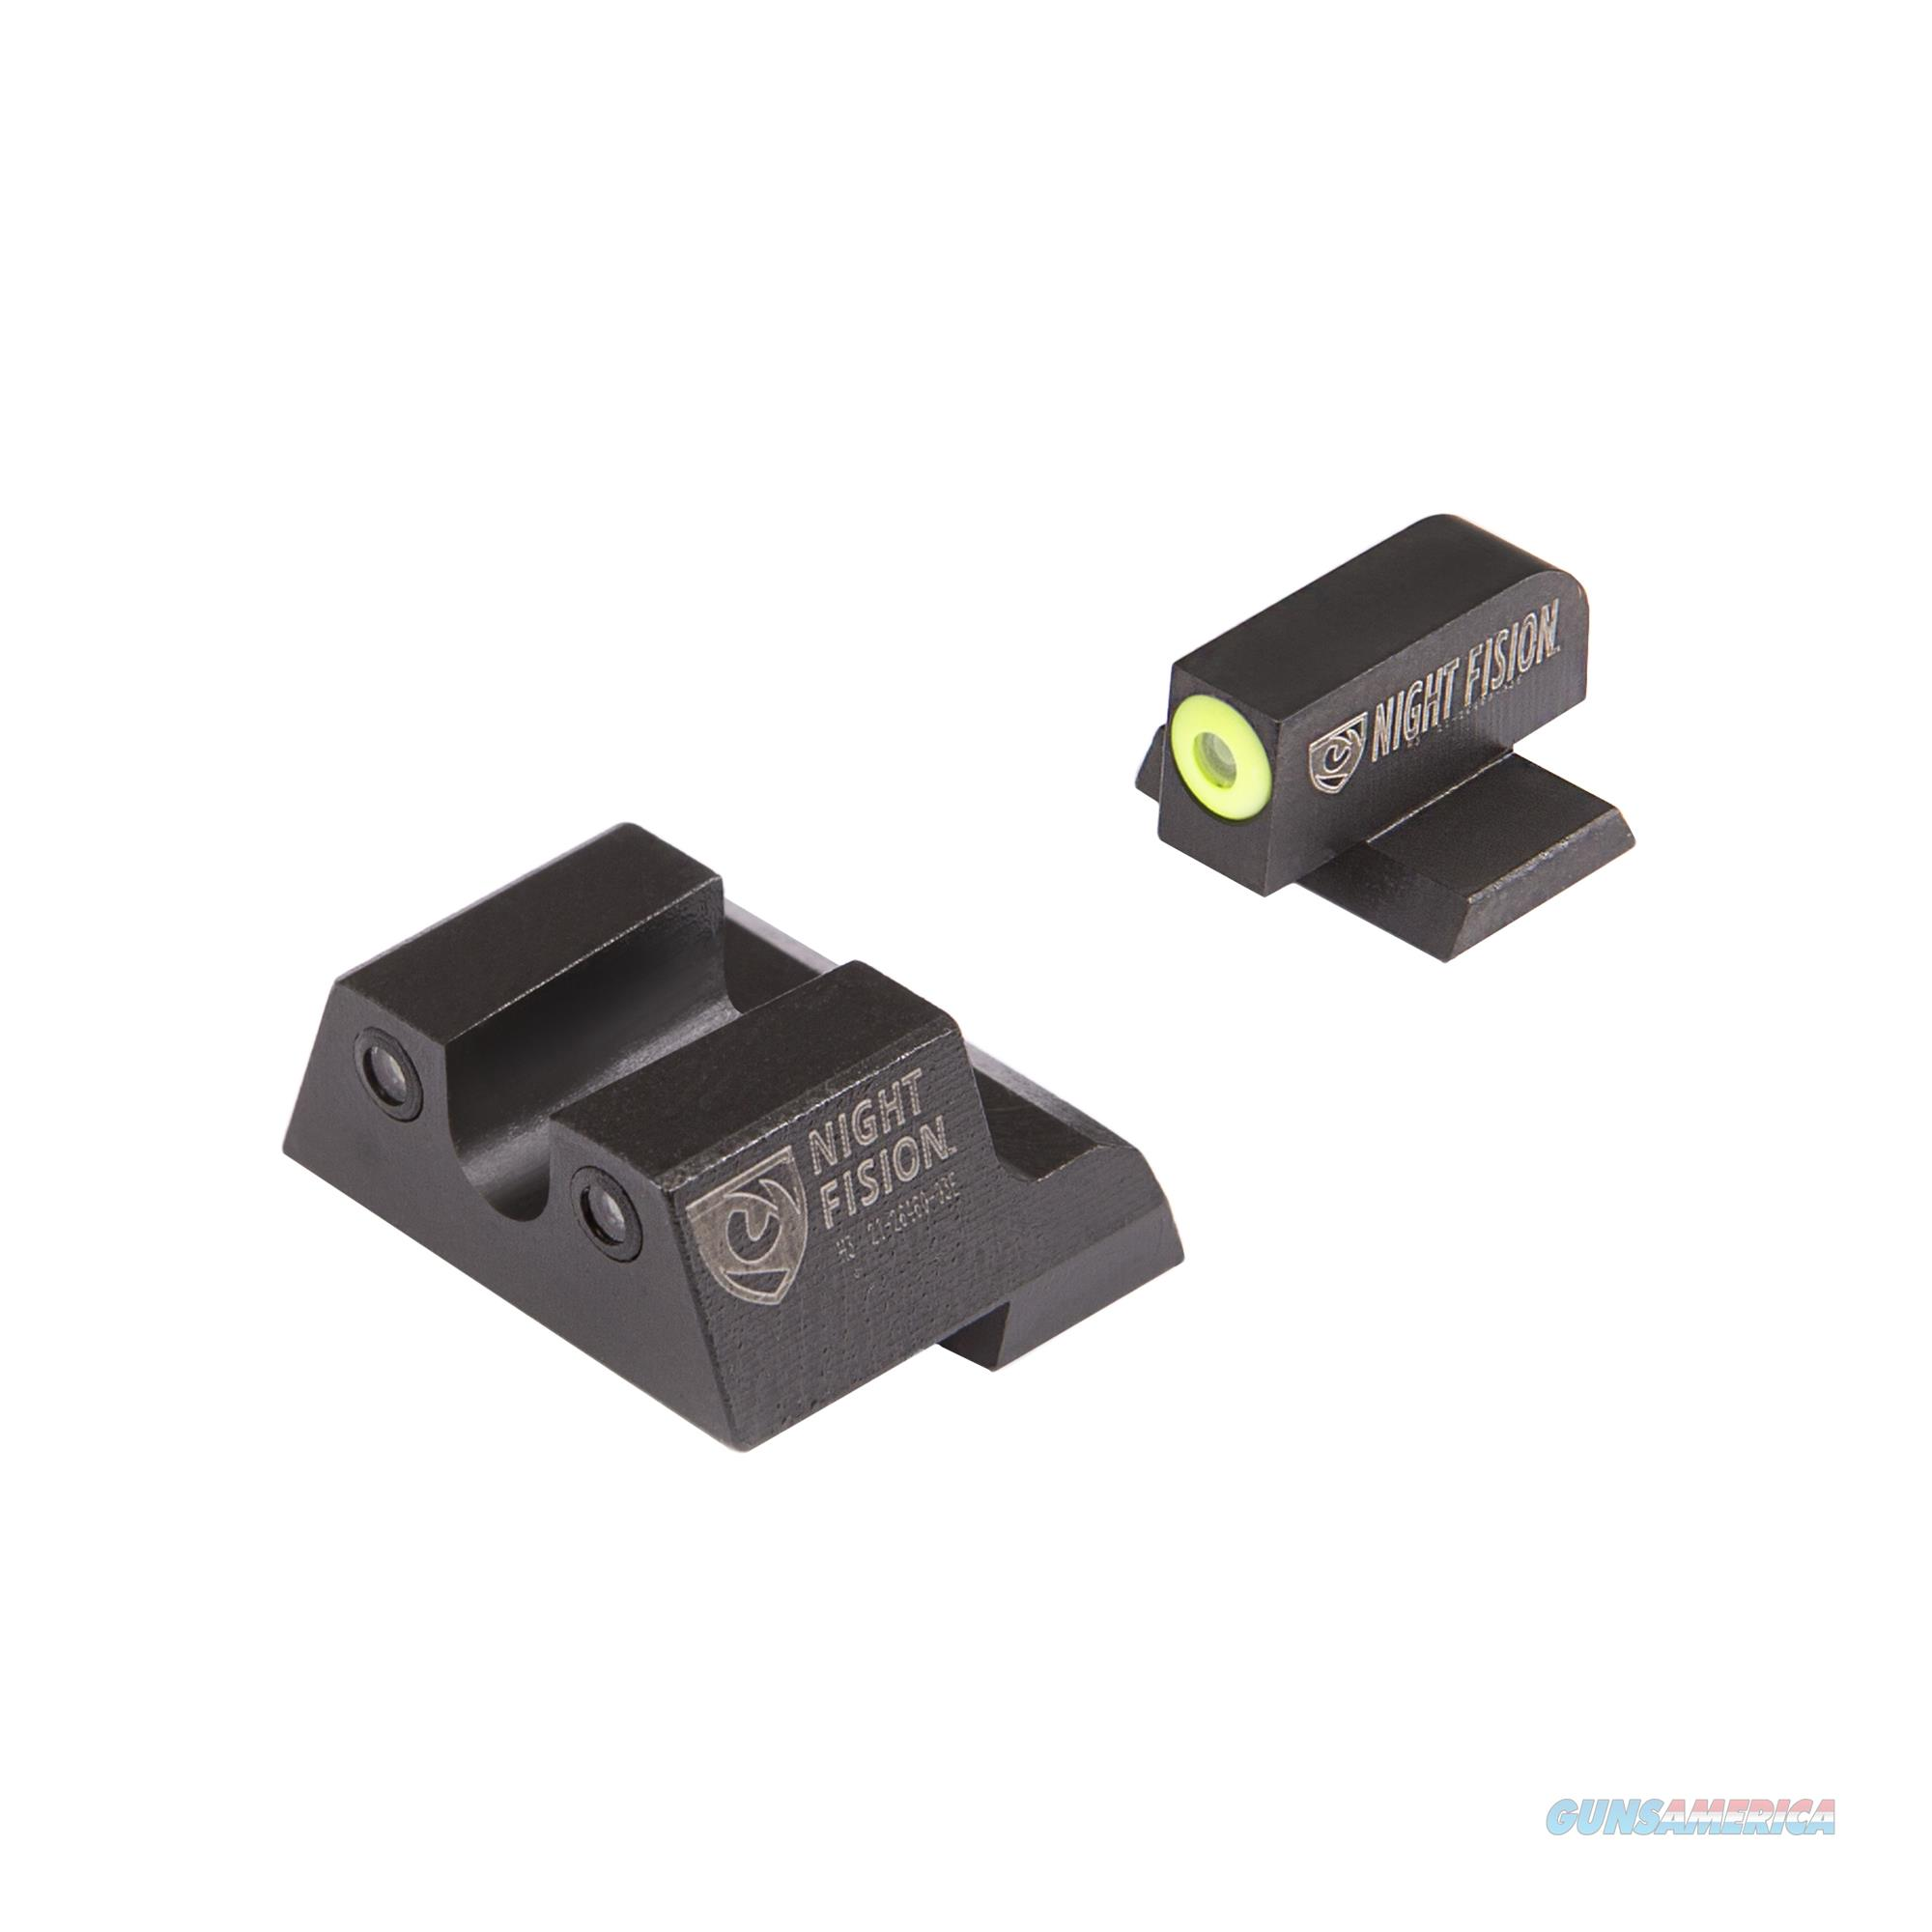 Night Fision Perfect Dot Night Sight Set, Canik Tp9sf Elite, Tp9sf, And Tp9sa CNK-027-007-YGZG  Non-Guns > Gun Parts > Misc > Rifles